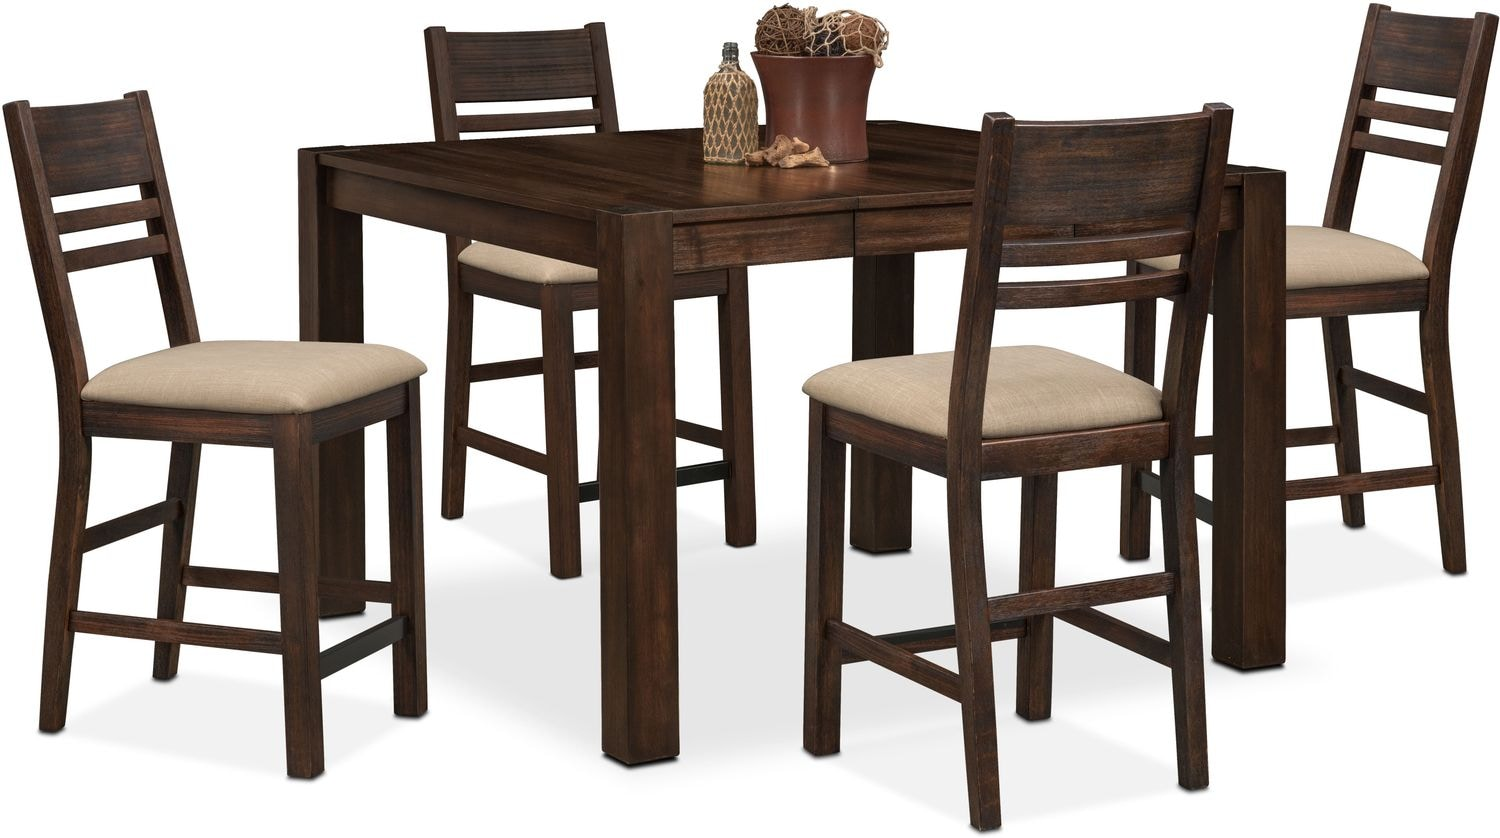 tribeca counter height table and 4 side chairs tobacco value city furniture and mattresses. Black Bedroom Furniture Sets. Home Design Ideas